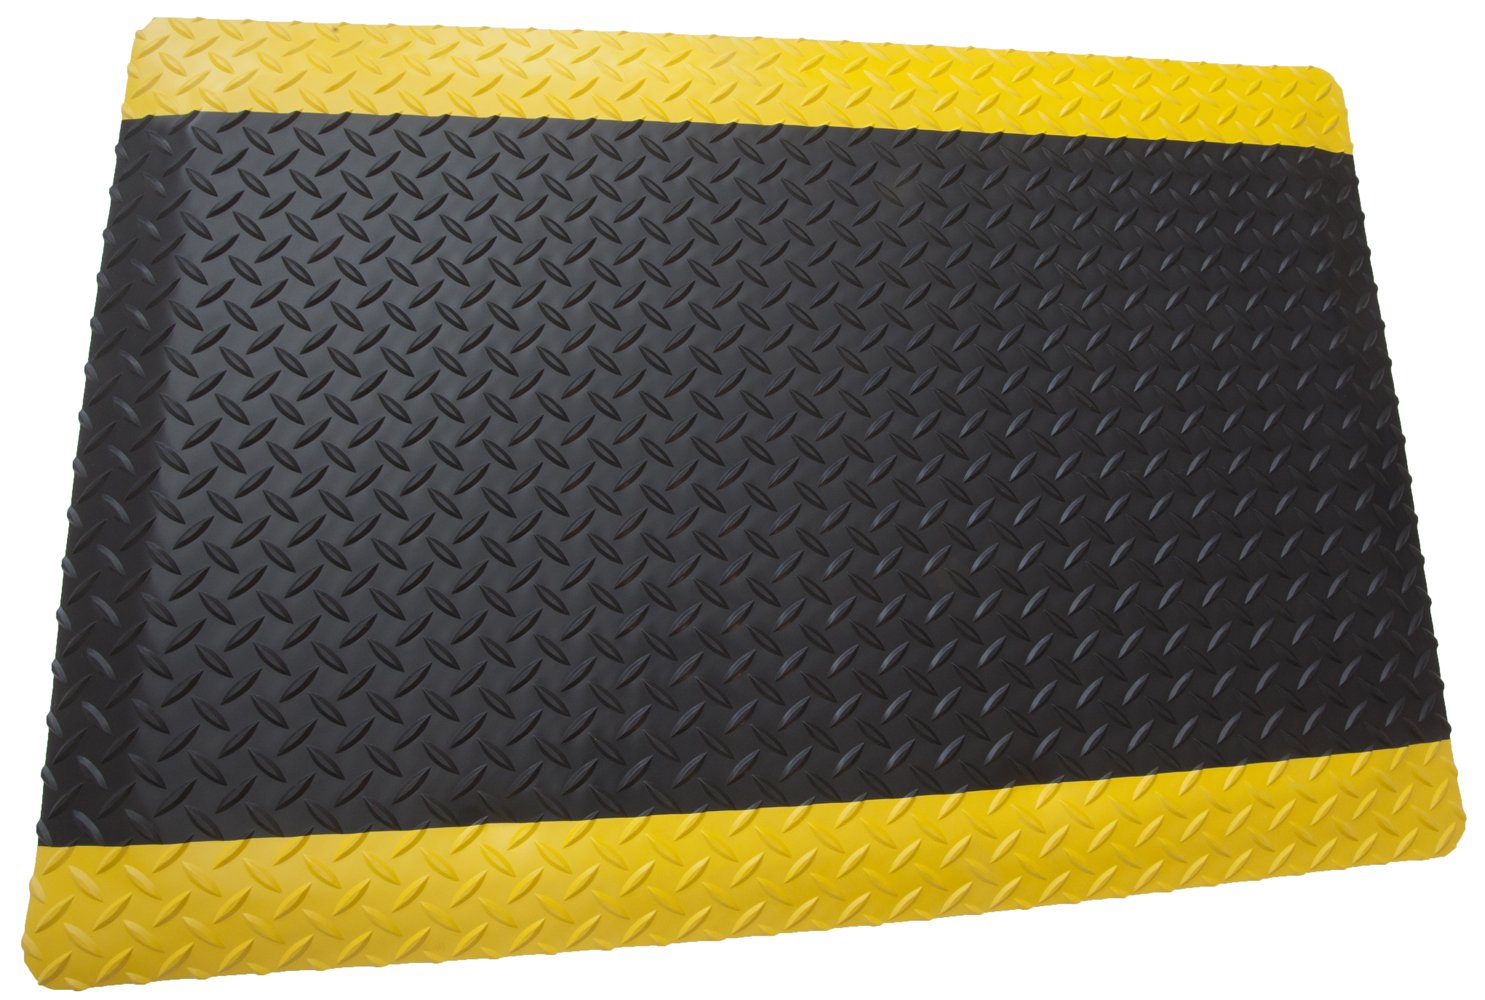 Rhino Mats DTT4872CDBY Diamond Plate Contract Duty Anti-Fatigue Mat with 2 Yellow Sides, 4' Width x 6' Length x 9/16'' Thickness, Solid Black